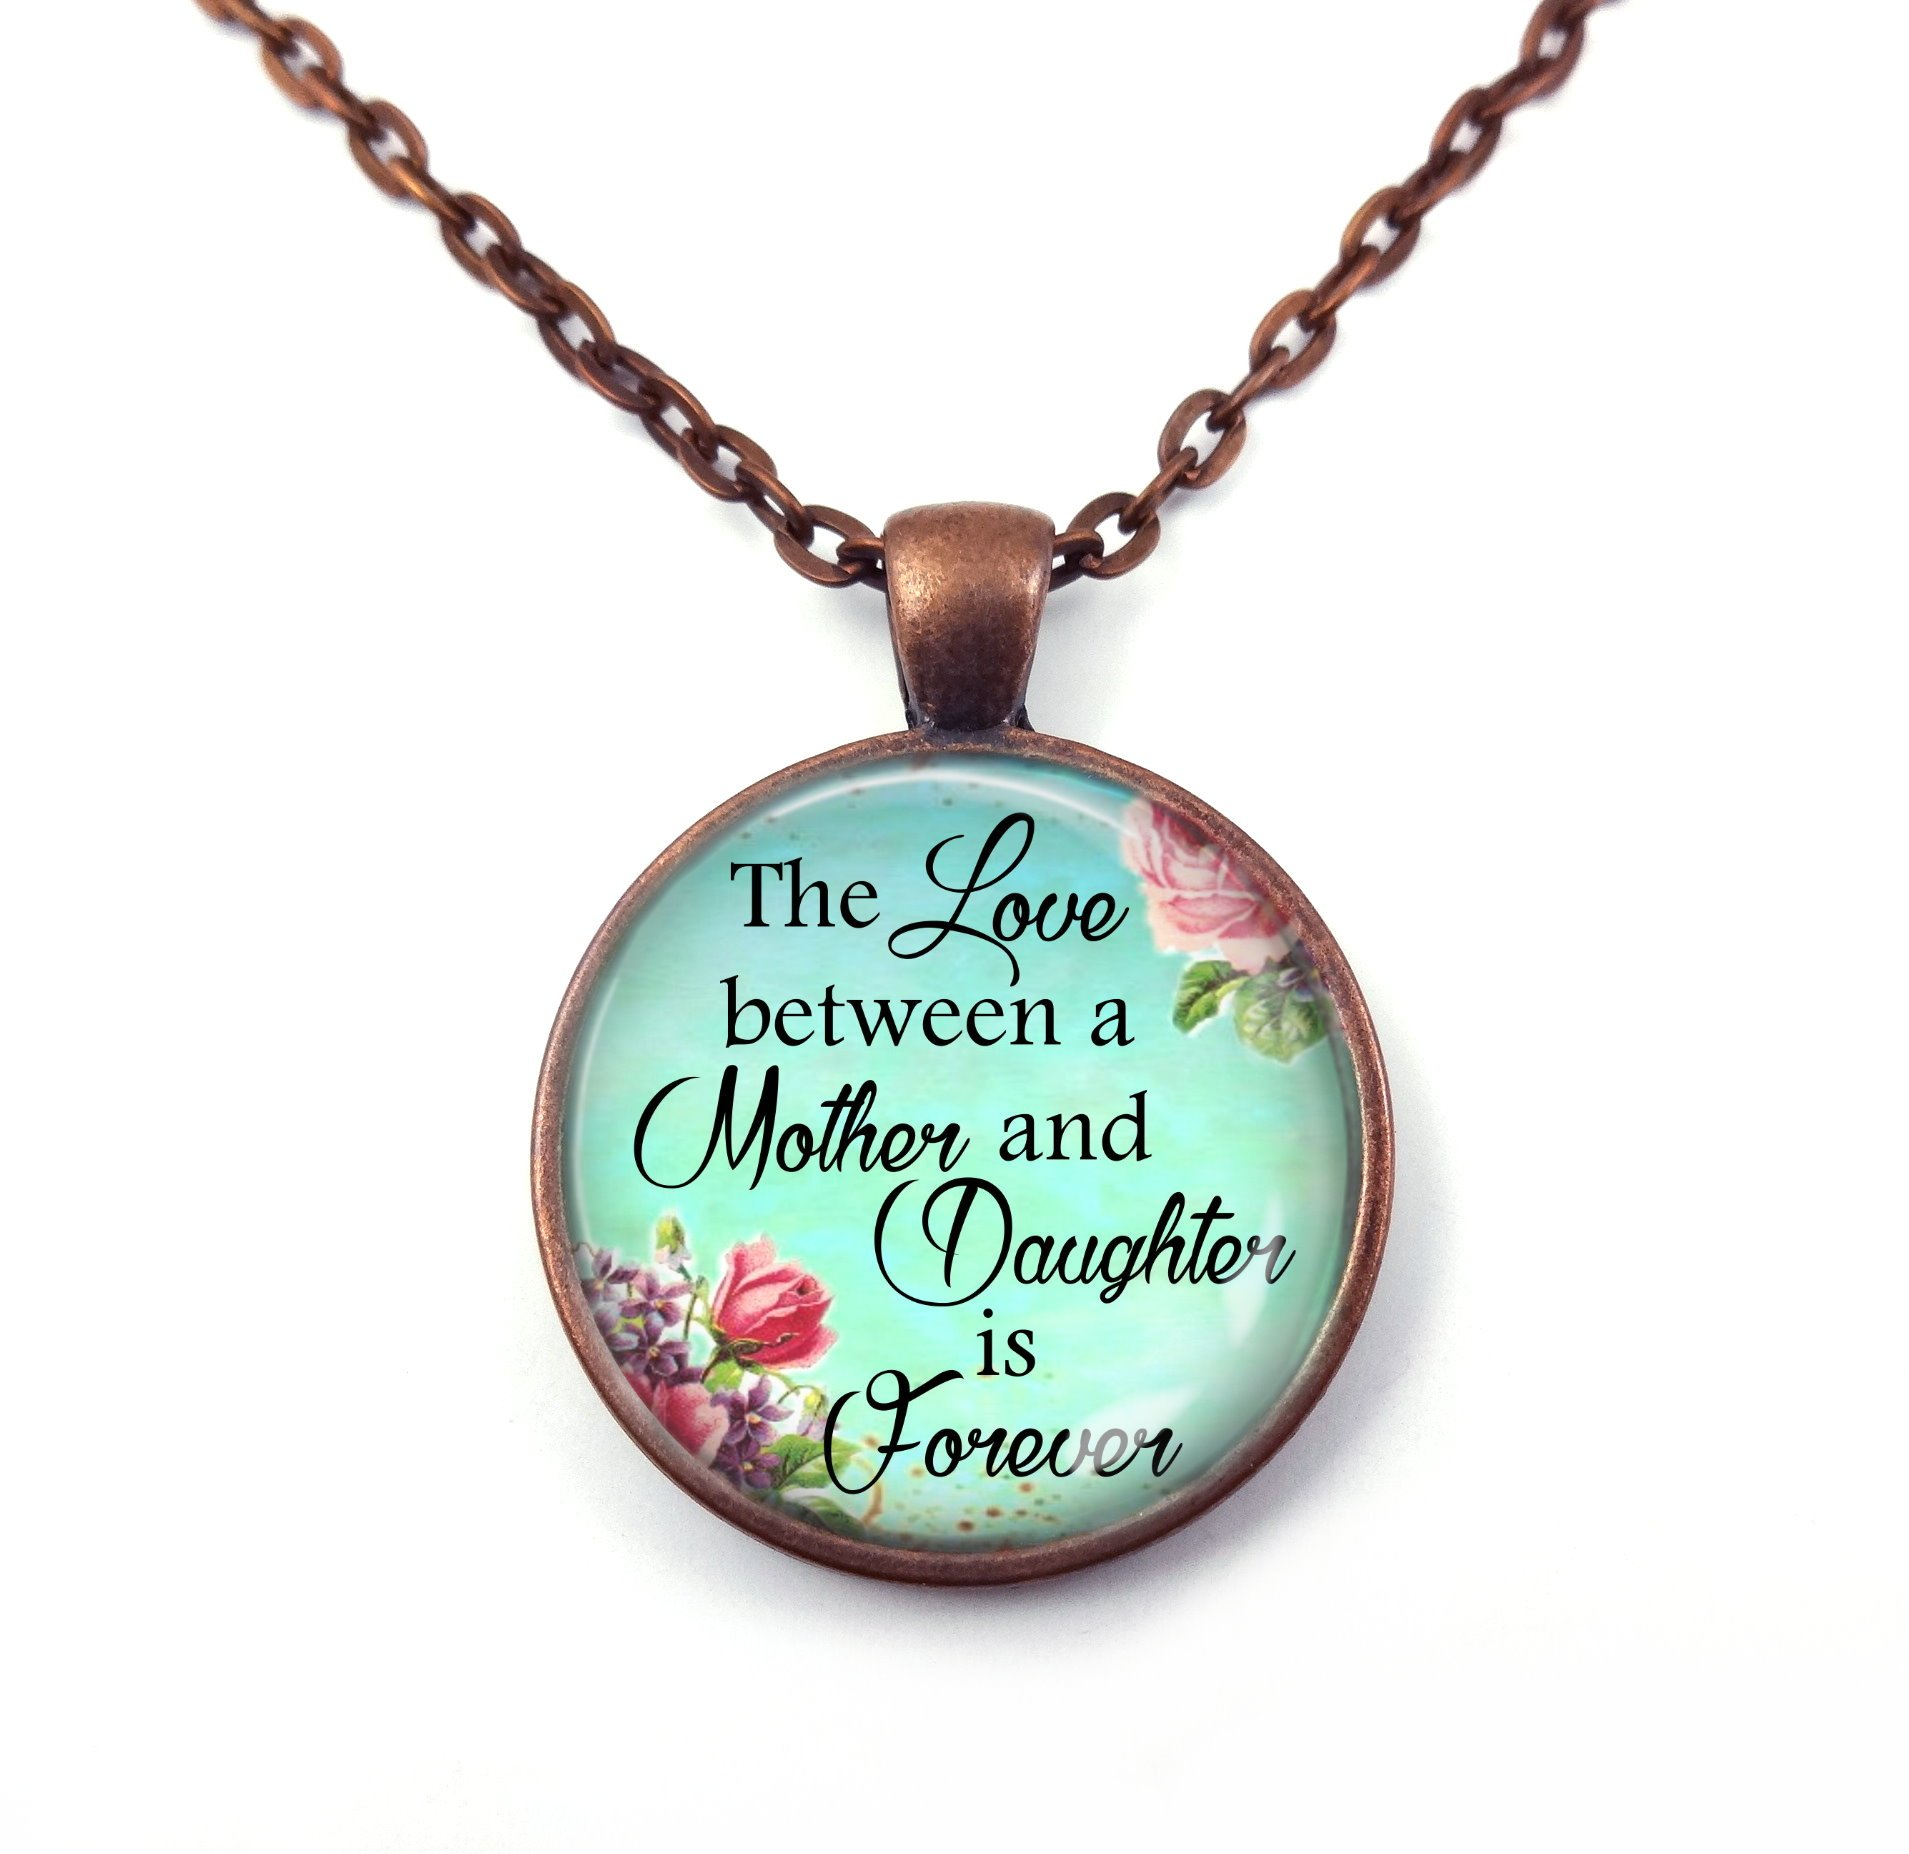 Antique Love between Mother & Daughter is Forever Pendant